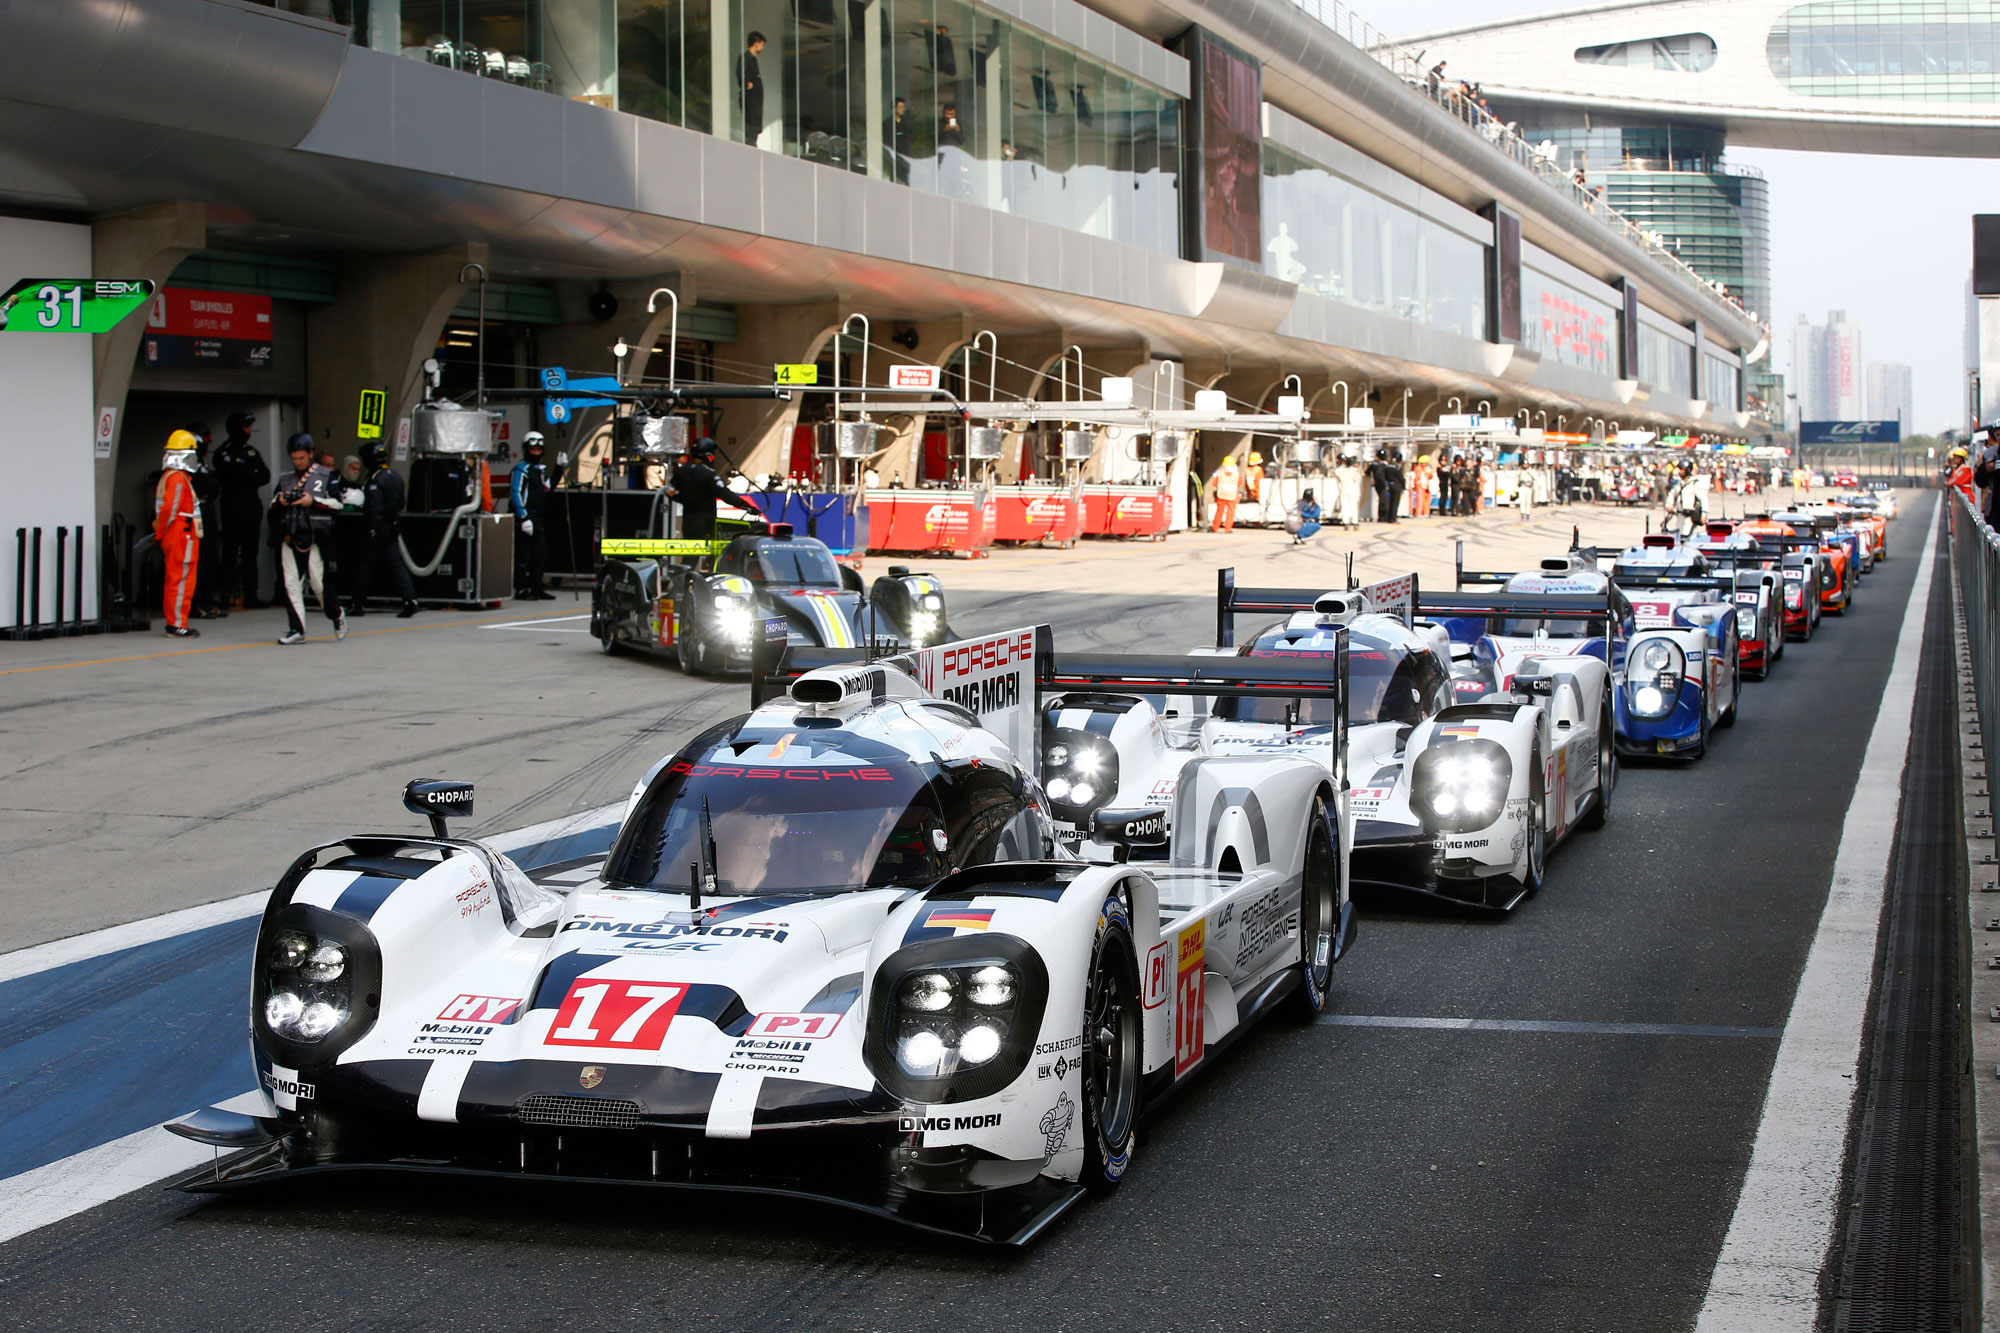 Porsche Score 1-2 in Shanghai To Become FIA WEC World Champions For 2015 9